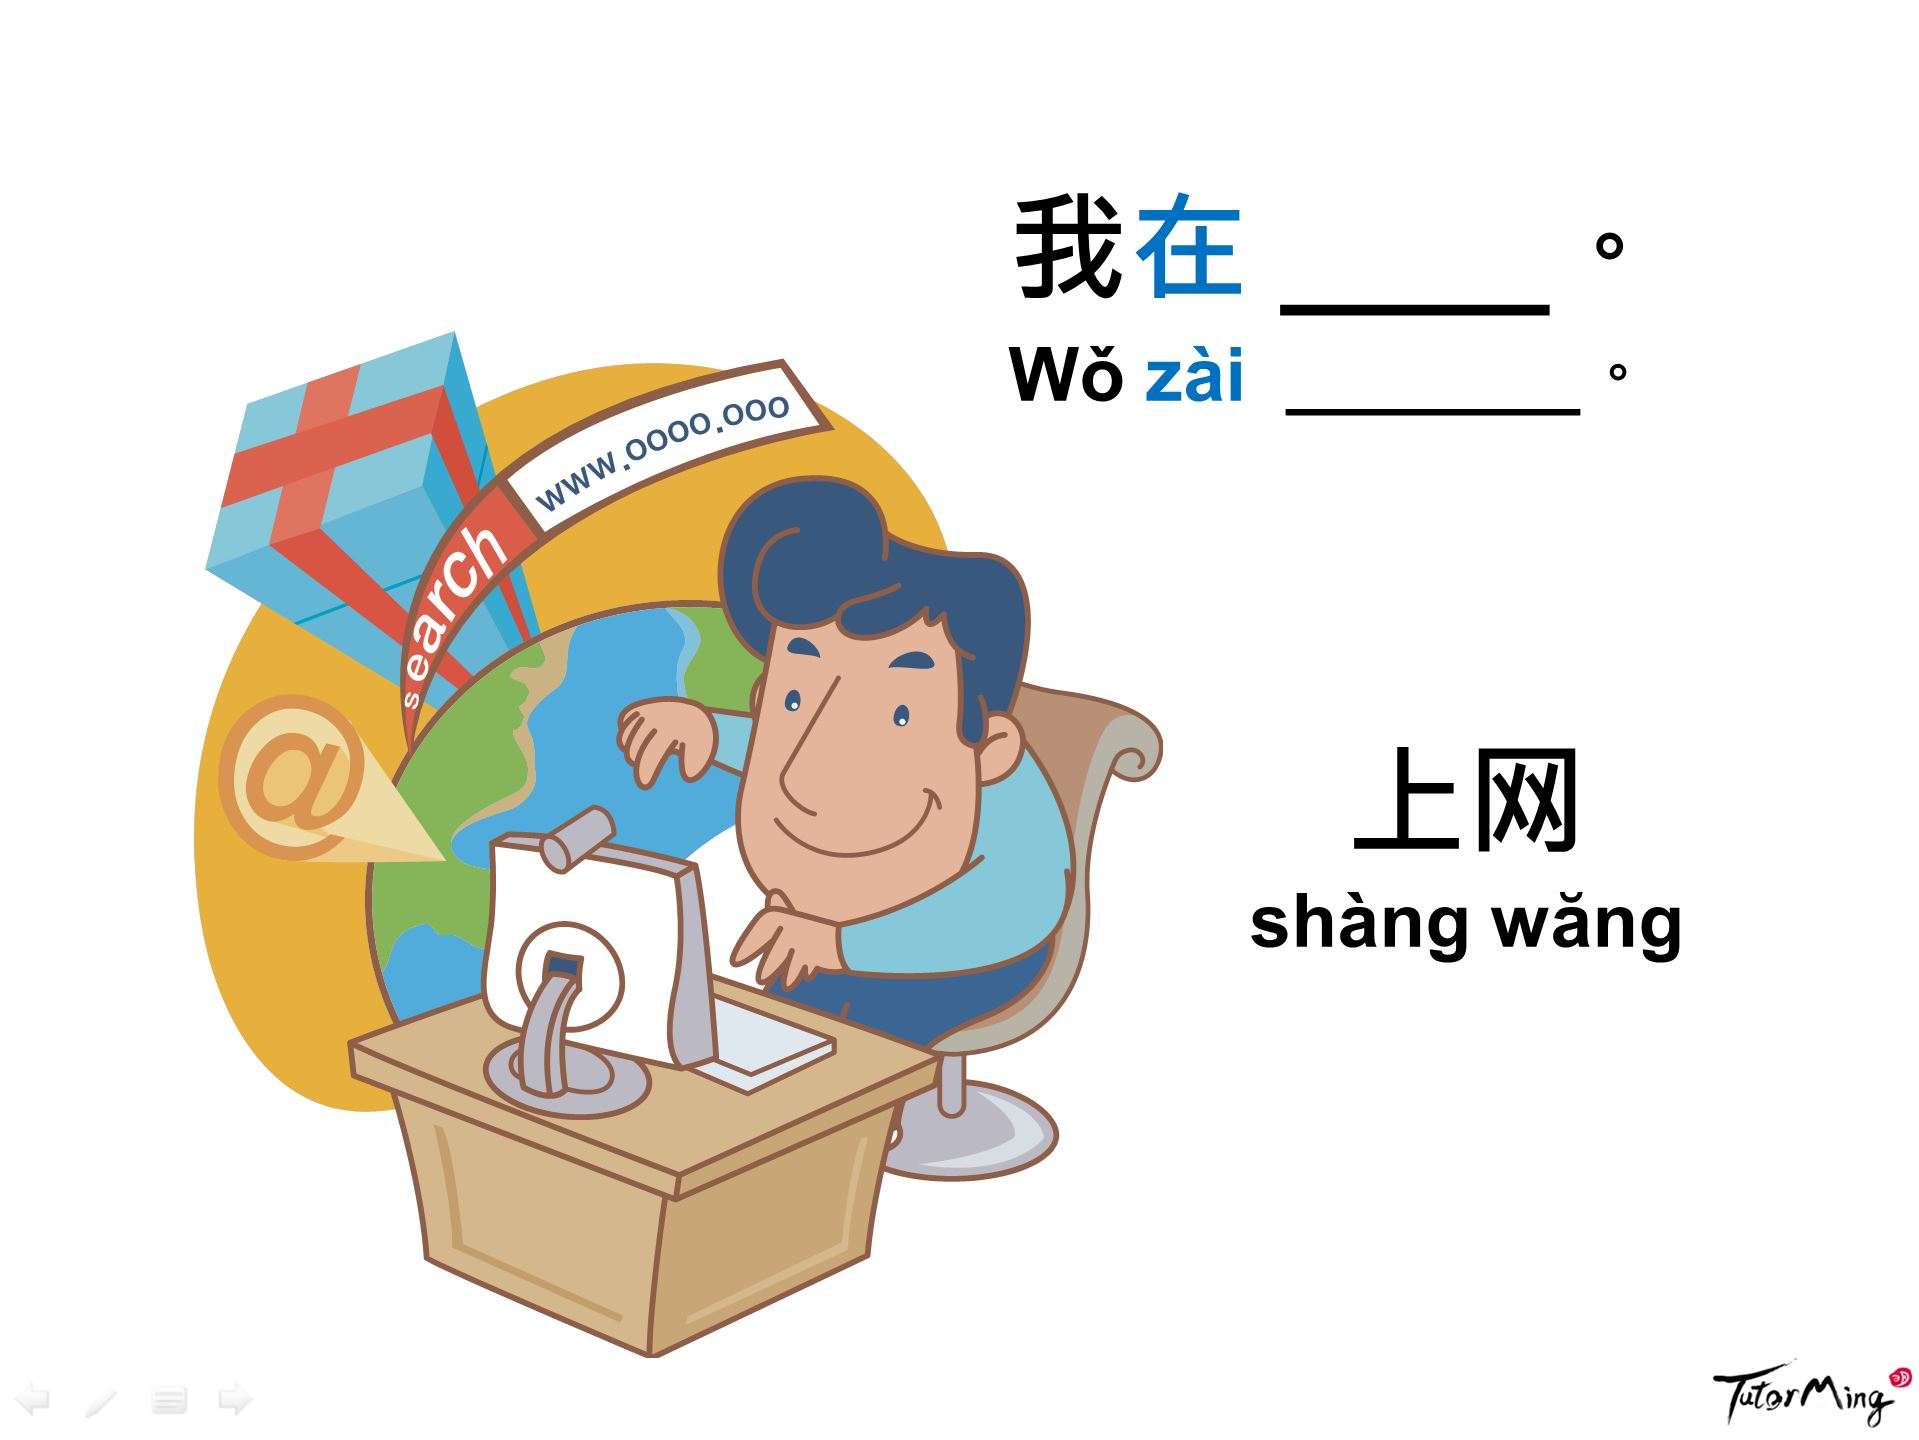 What_are_you_doing_in_Chinese.jpg